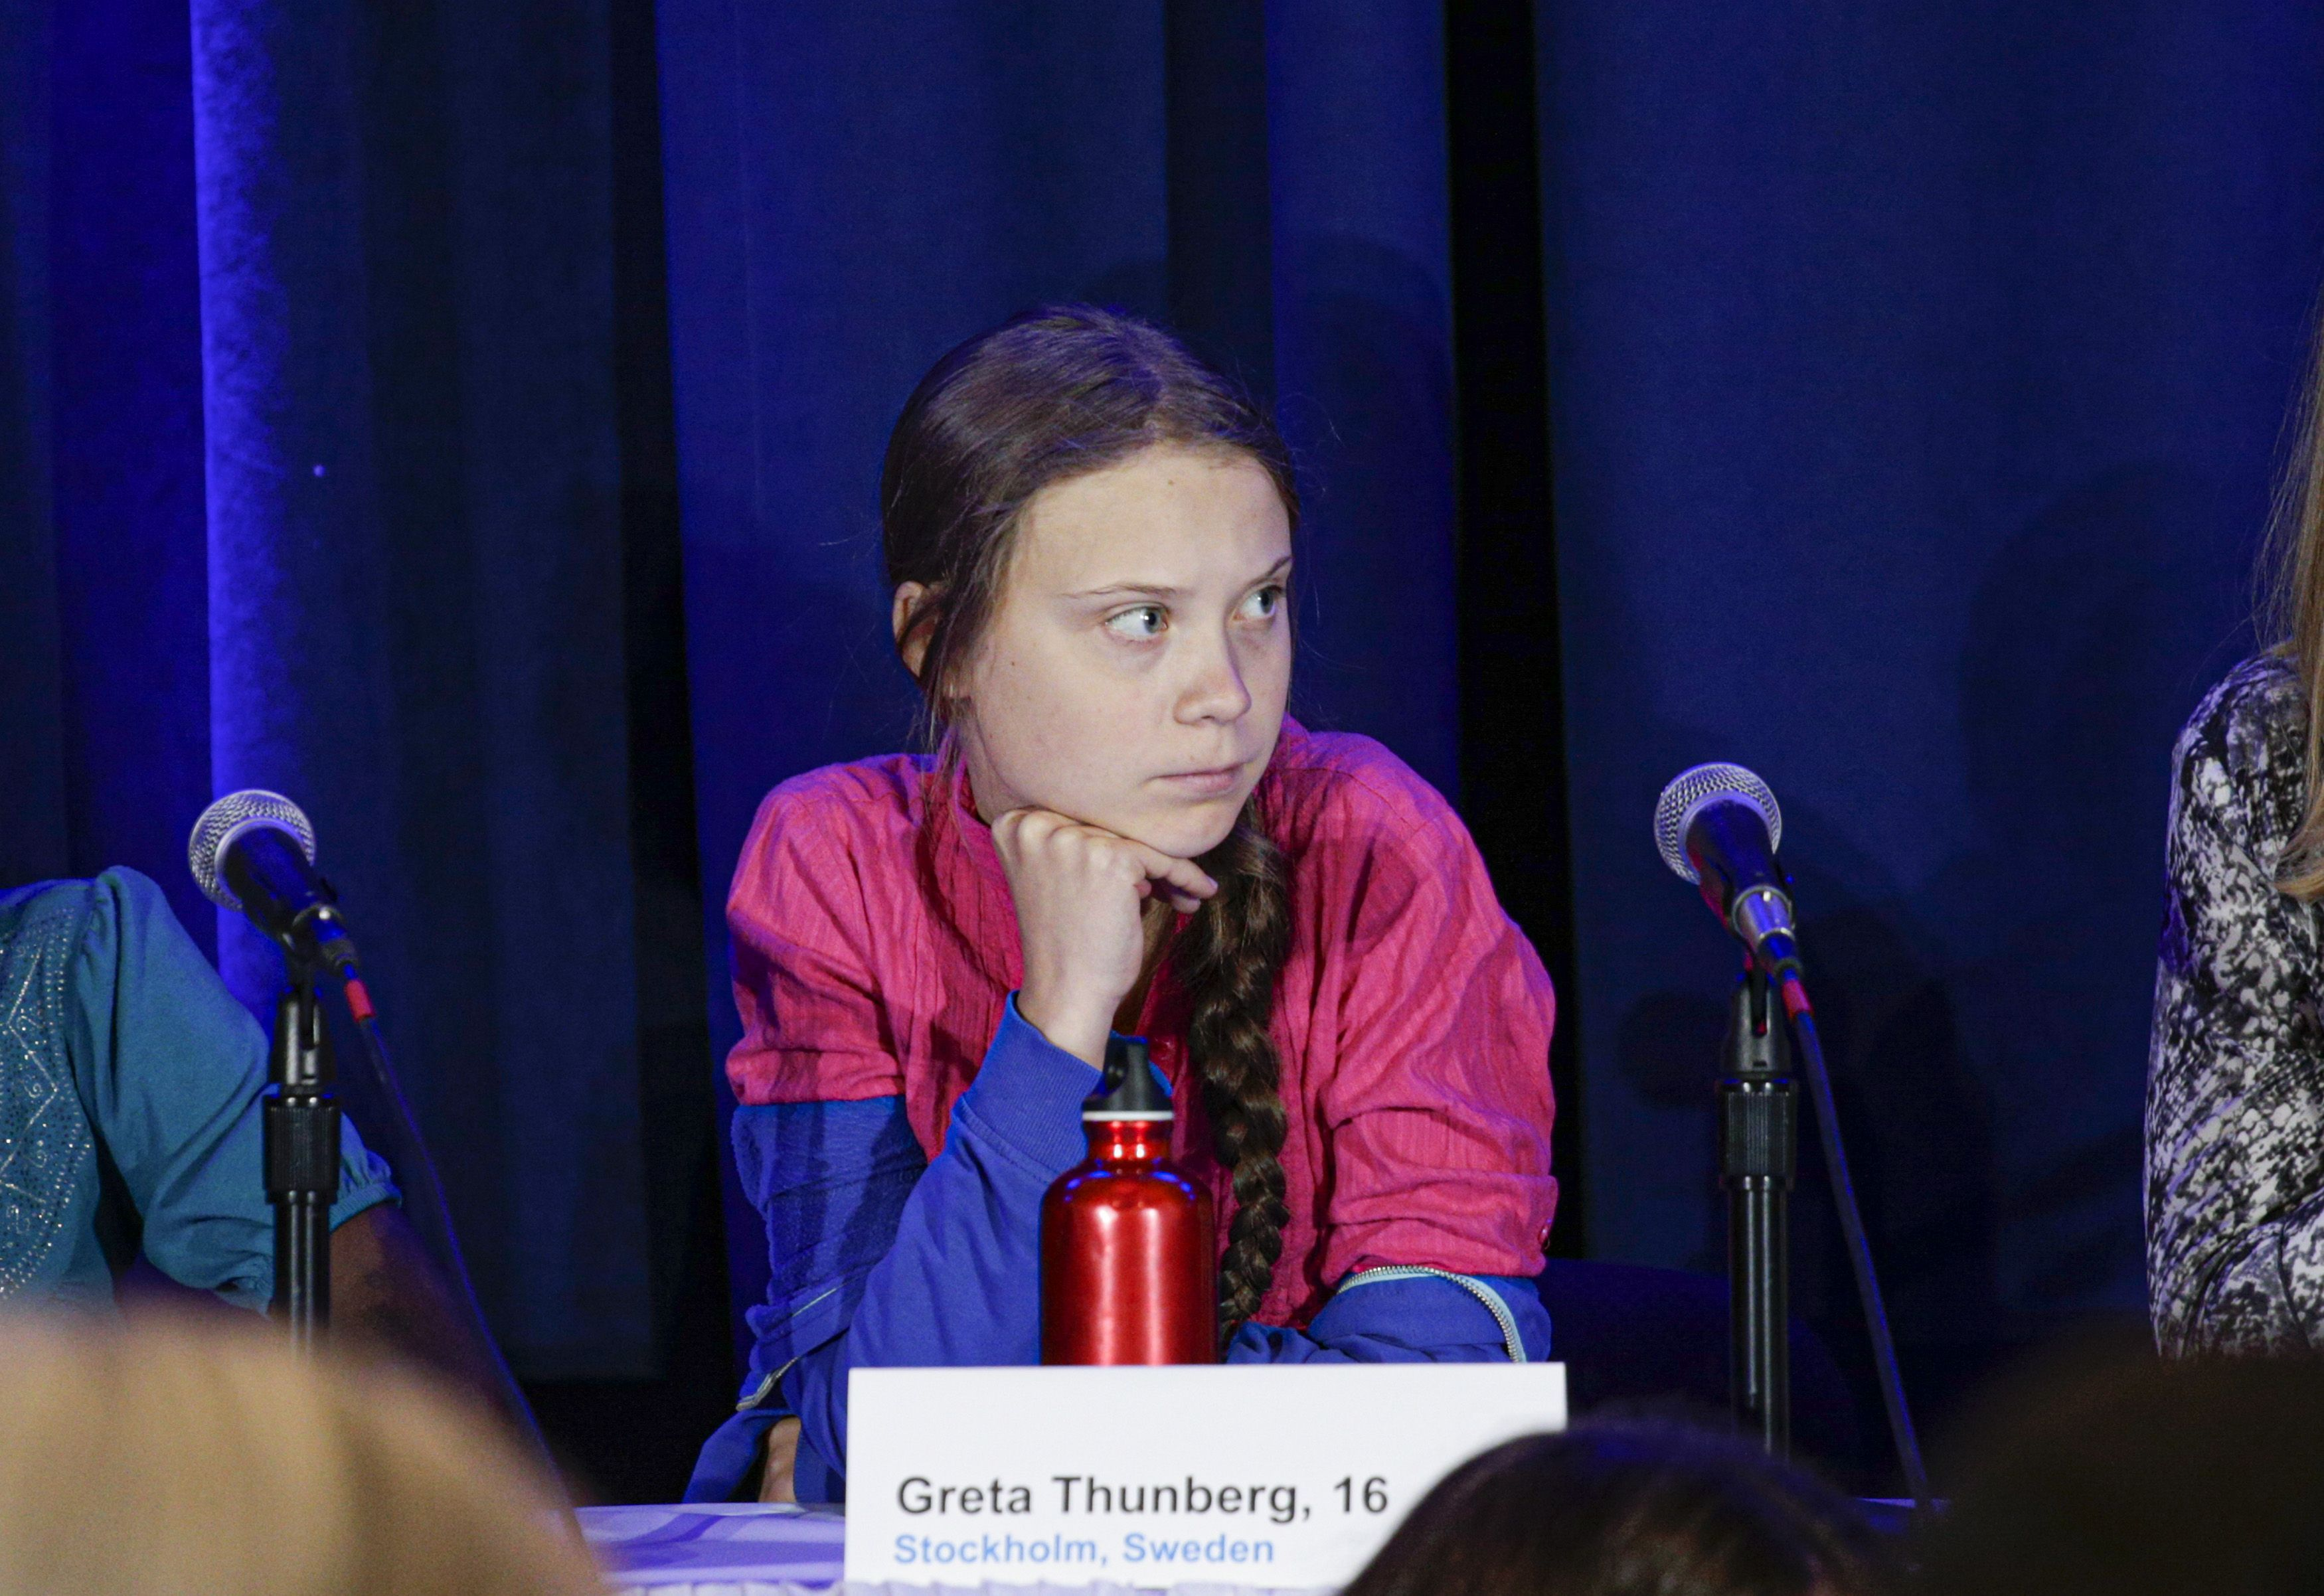 Greta Thunberg Gave President Trump a Withering Stare At The UN Climate Summit